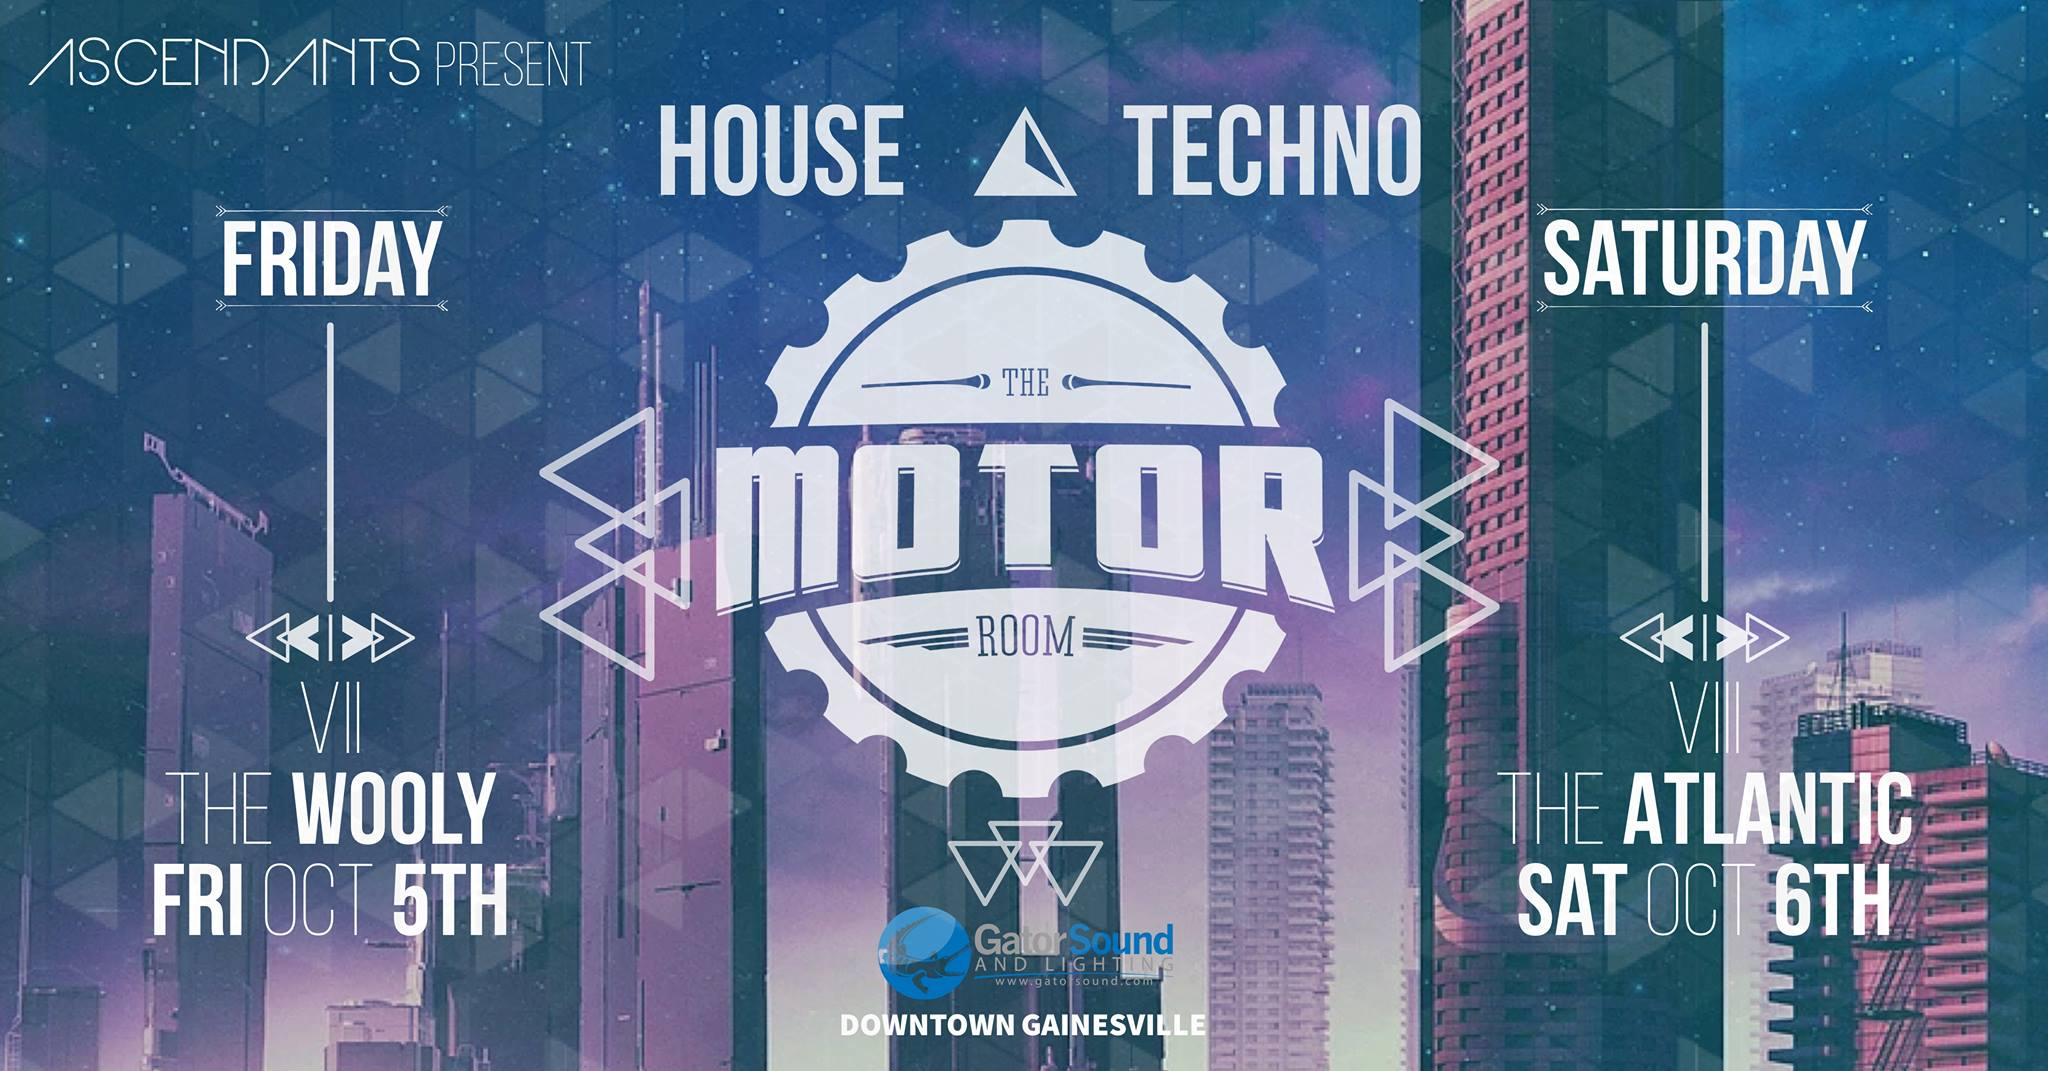 House ✘ Techno All Night ⏤ LSU Weekend  Day 1 ⏤ Motor Room VII ▼  The Wooly  ▼ Friday, October 5th ▼ 10 PM ϟ 21+ $5 ϟ 18+ $8  Day 2 ⏤ Motor Room VIII ▼  The Atlantic  ▼ Saturday, October 6th ▼ 10 PM ϟ 21+ $5 ϟ 18+ $8  Featuring ⏤ Selectors ▲  Ascendants  ▲ Dunstan Wallace ▲ Kelly Kochis ▲ Adobo ▲ Deitz ▲ Sketch  ➳ Presented by  Ascendants  ✘  Gator Sound and Lighting